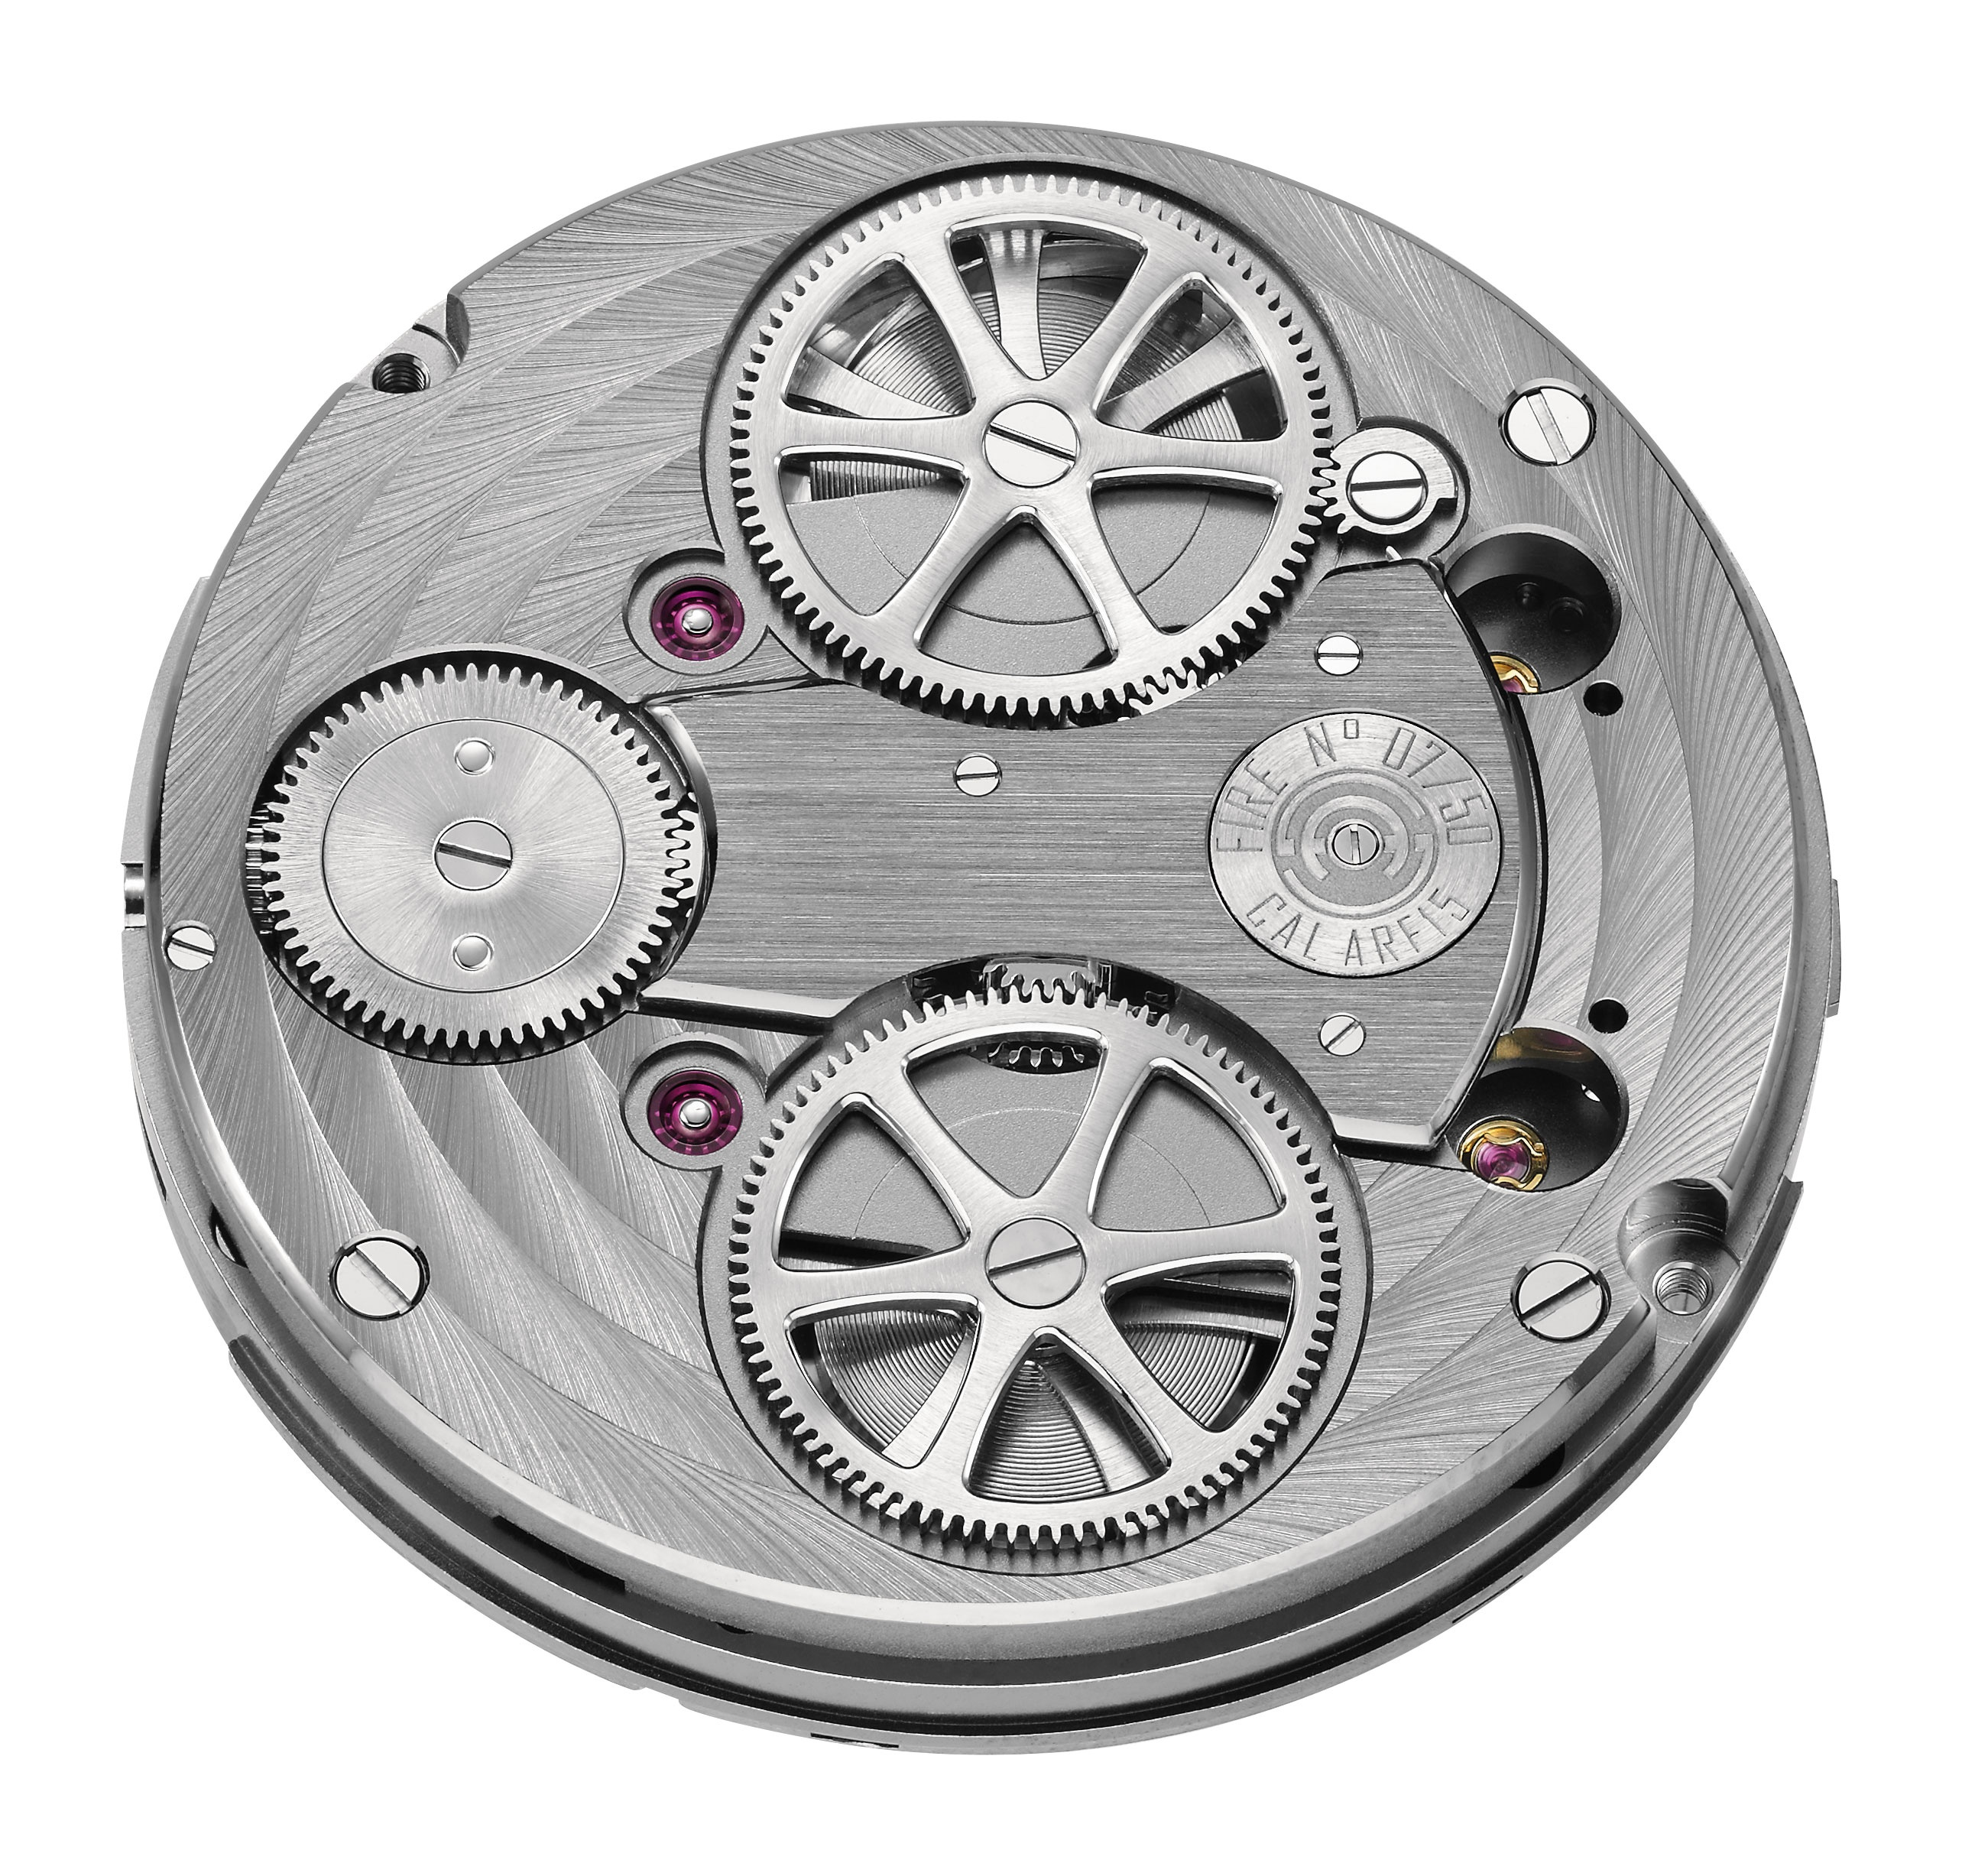 Armin Strom Caliber ARF 15 for the Mirrored Force Resonance Guilloche Dial watch